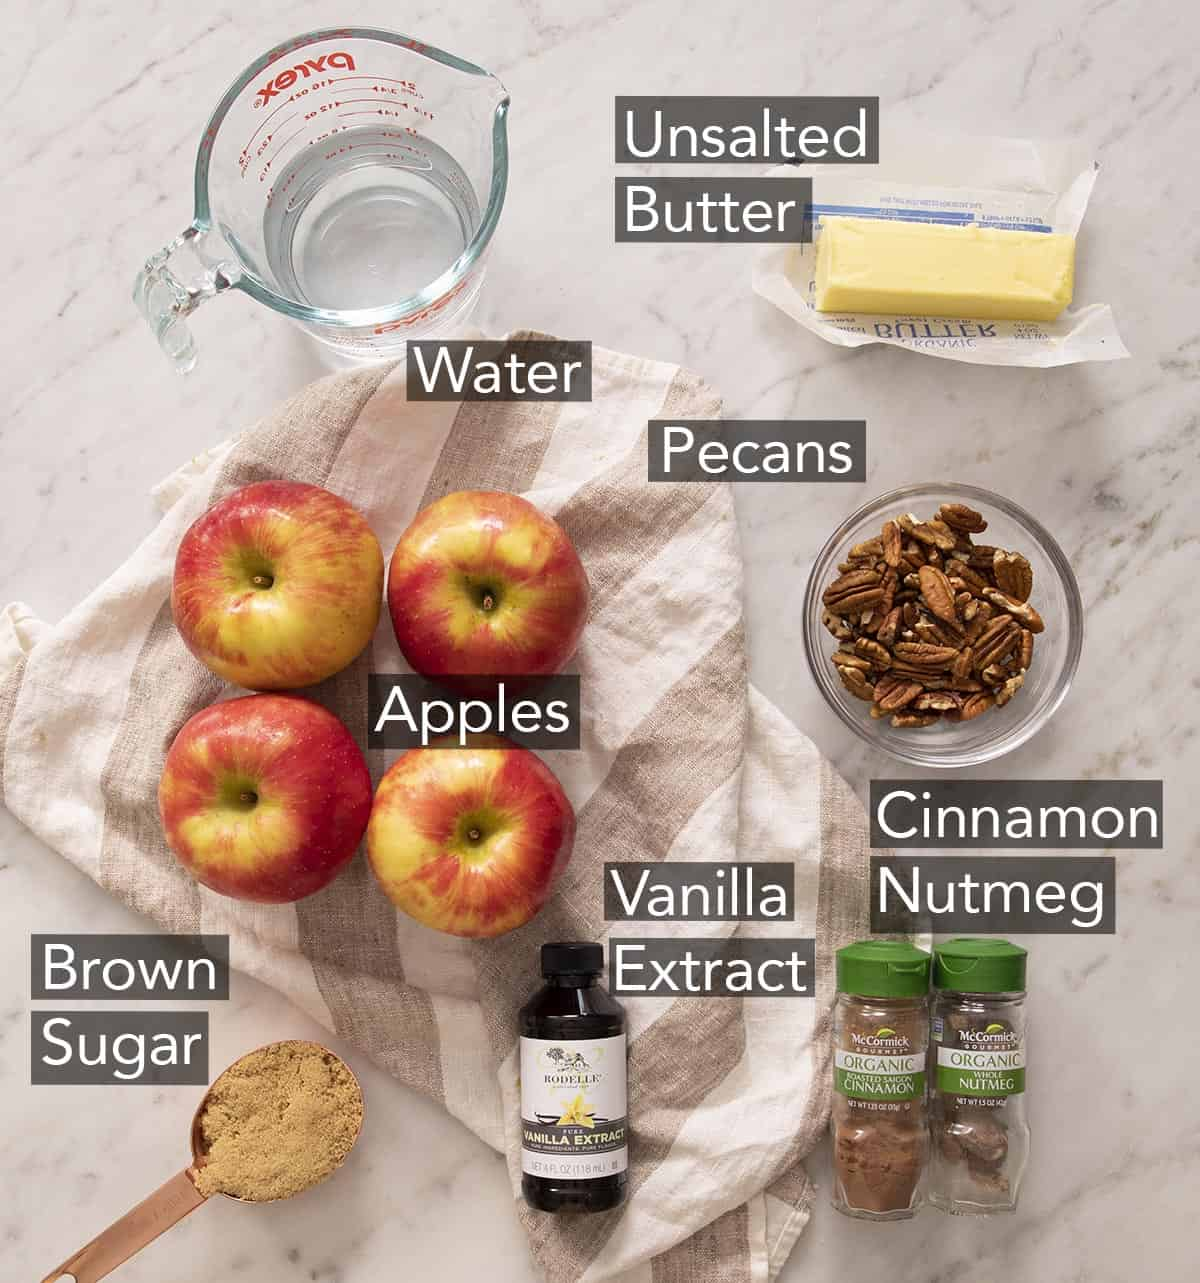 Ingredients for making baked apples on a marble counter.